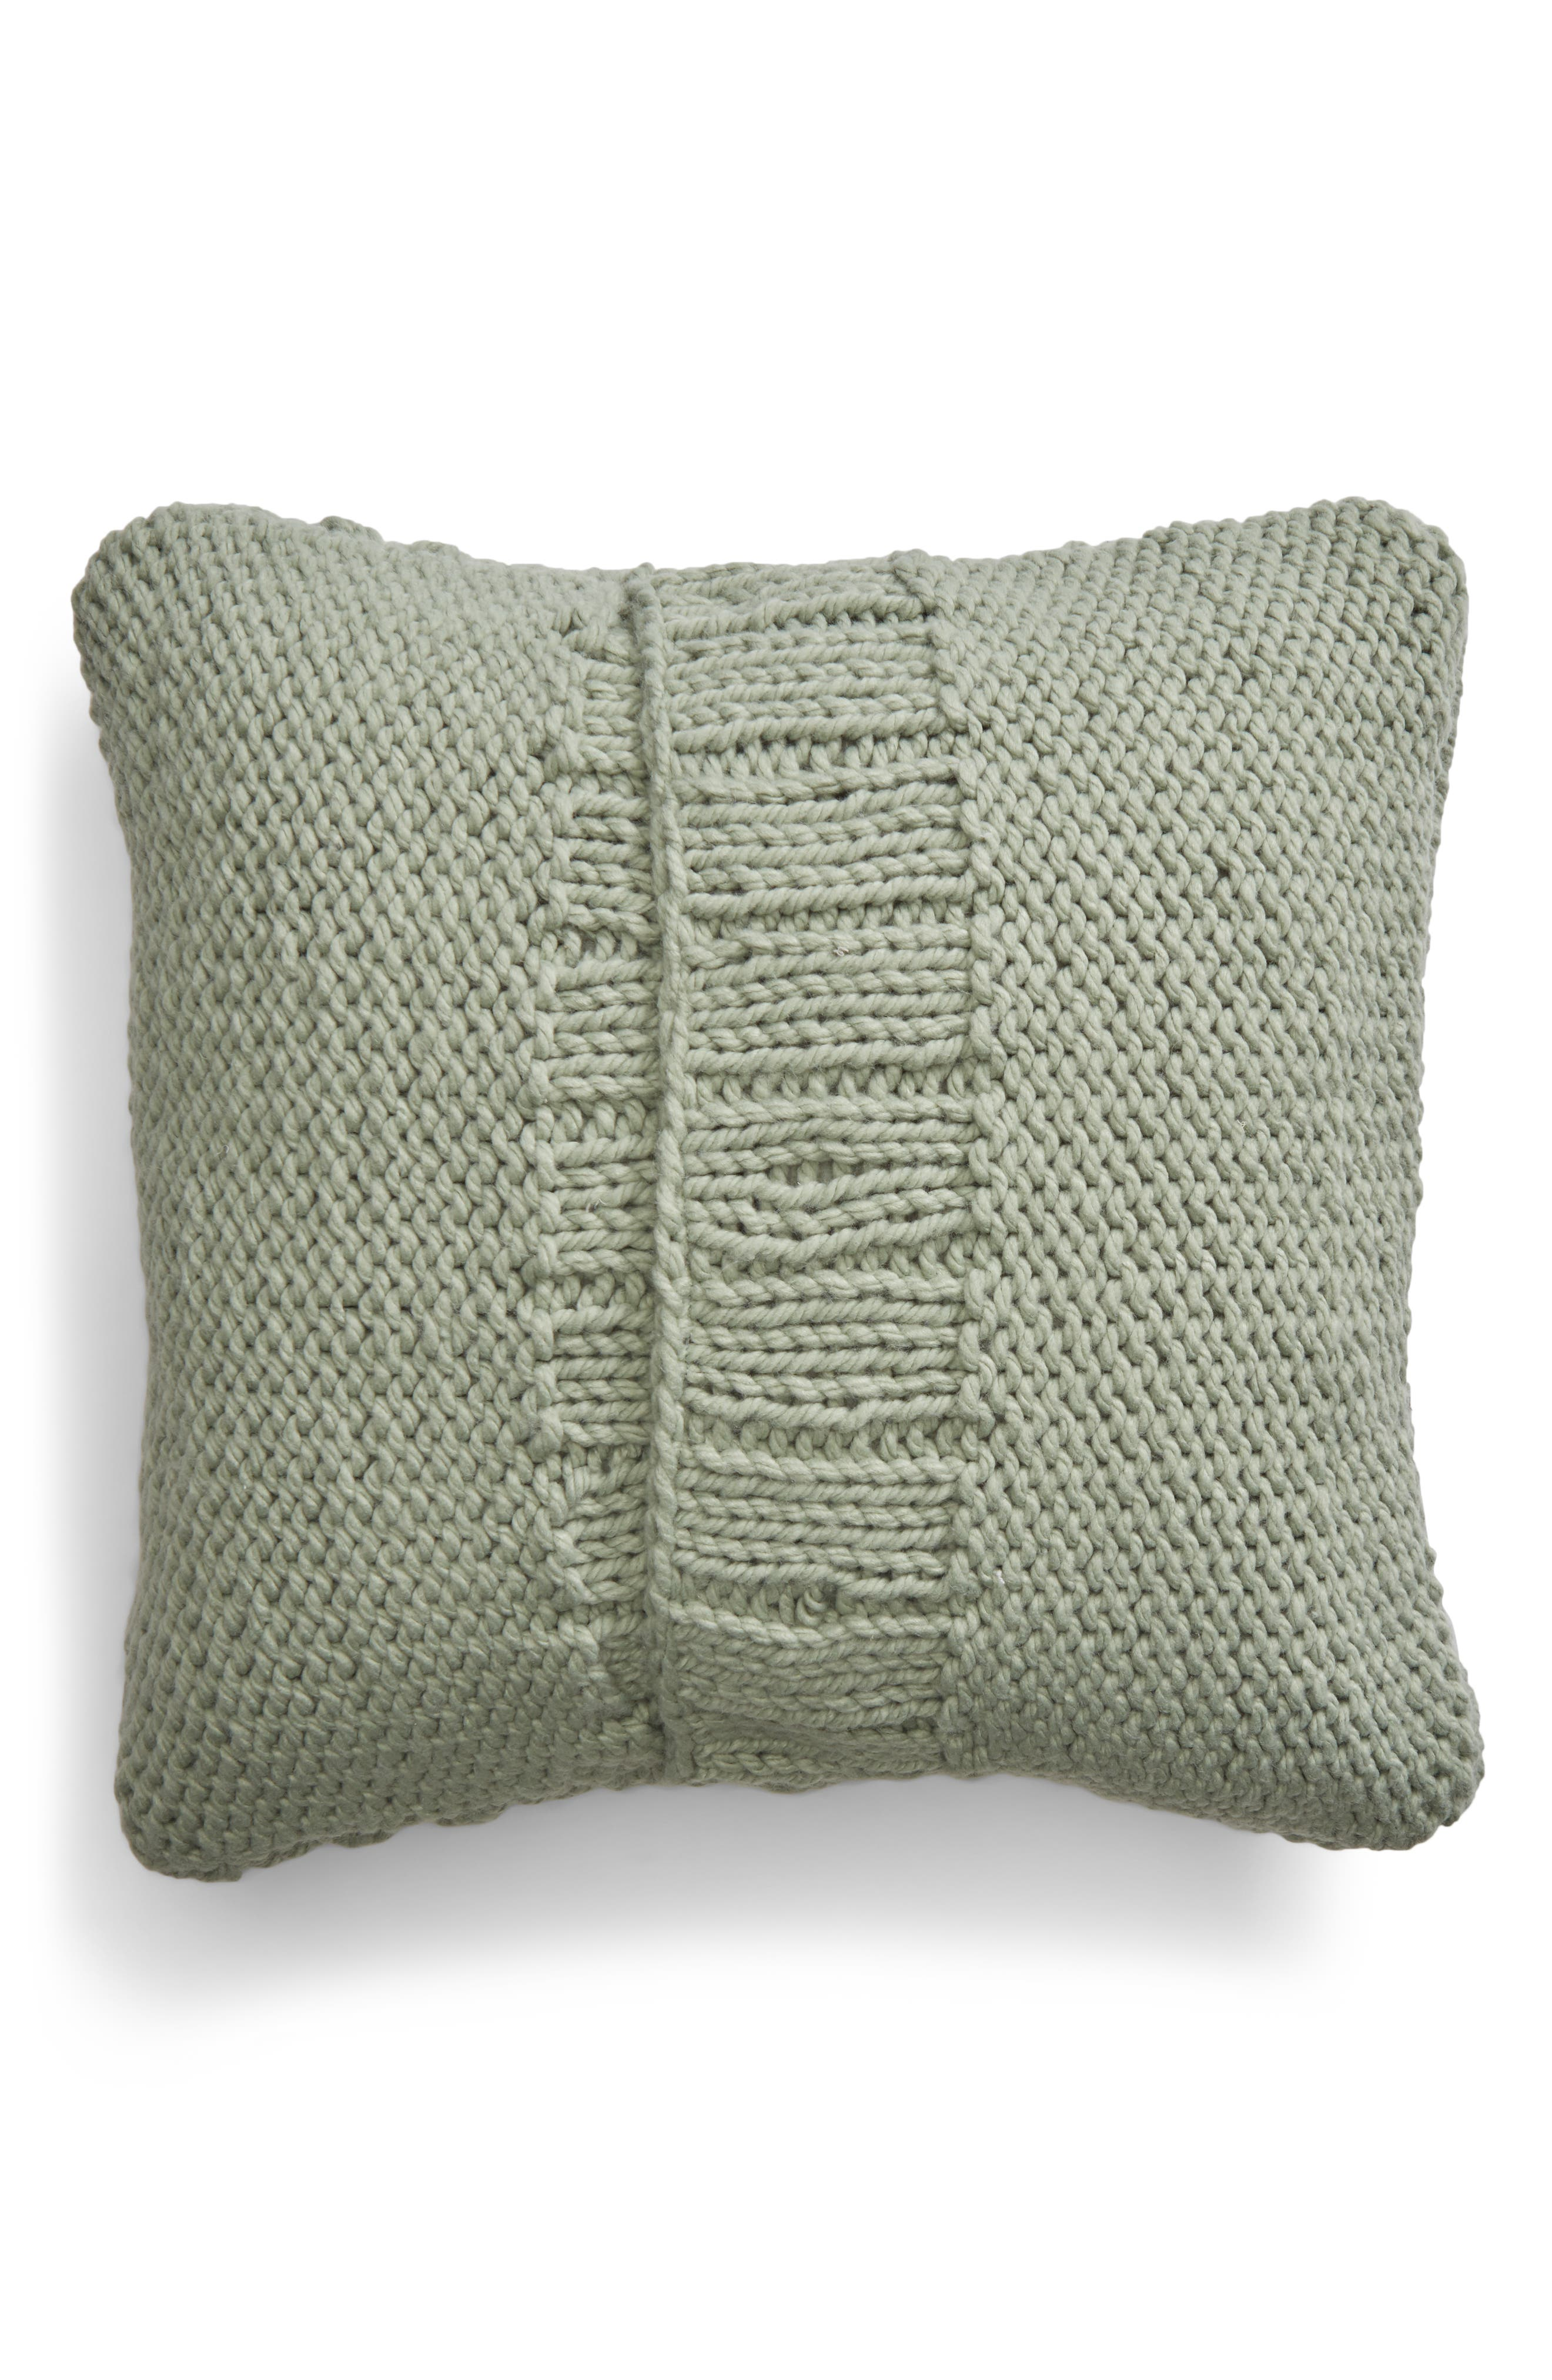 Chunky Cable Knit Accent Pillow,                             Alternate thumbnail 2, color,                             GREEN ICEBERG